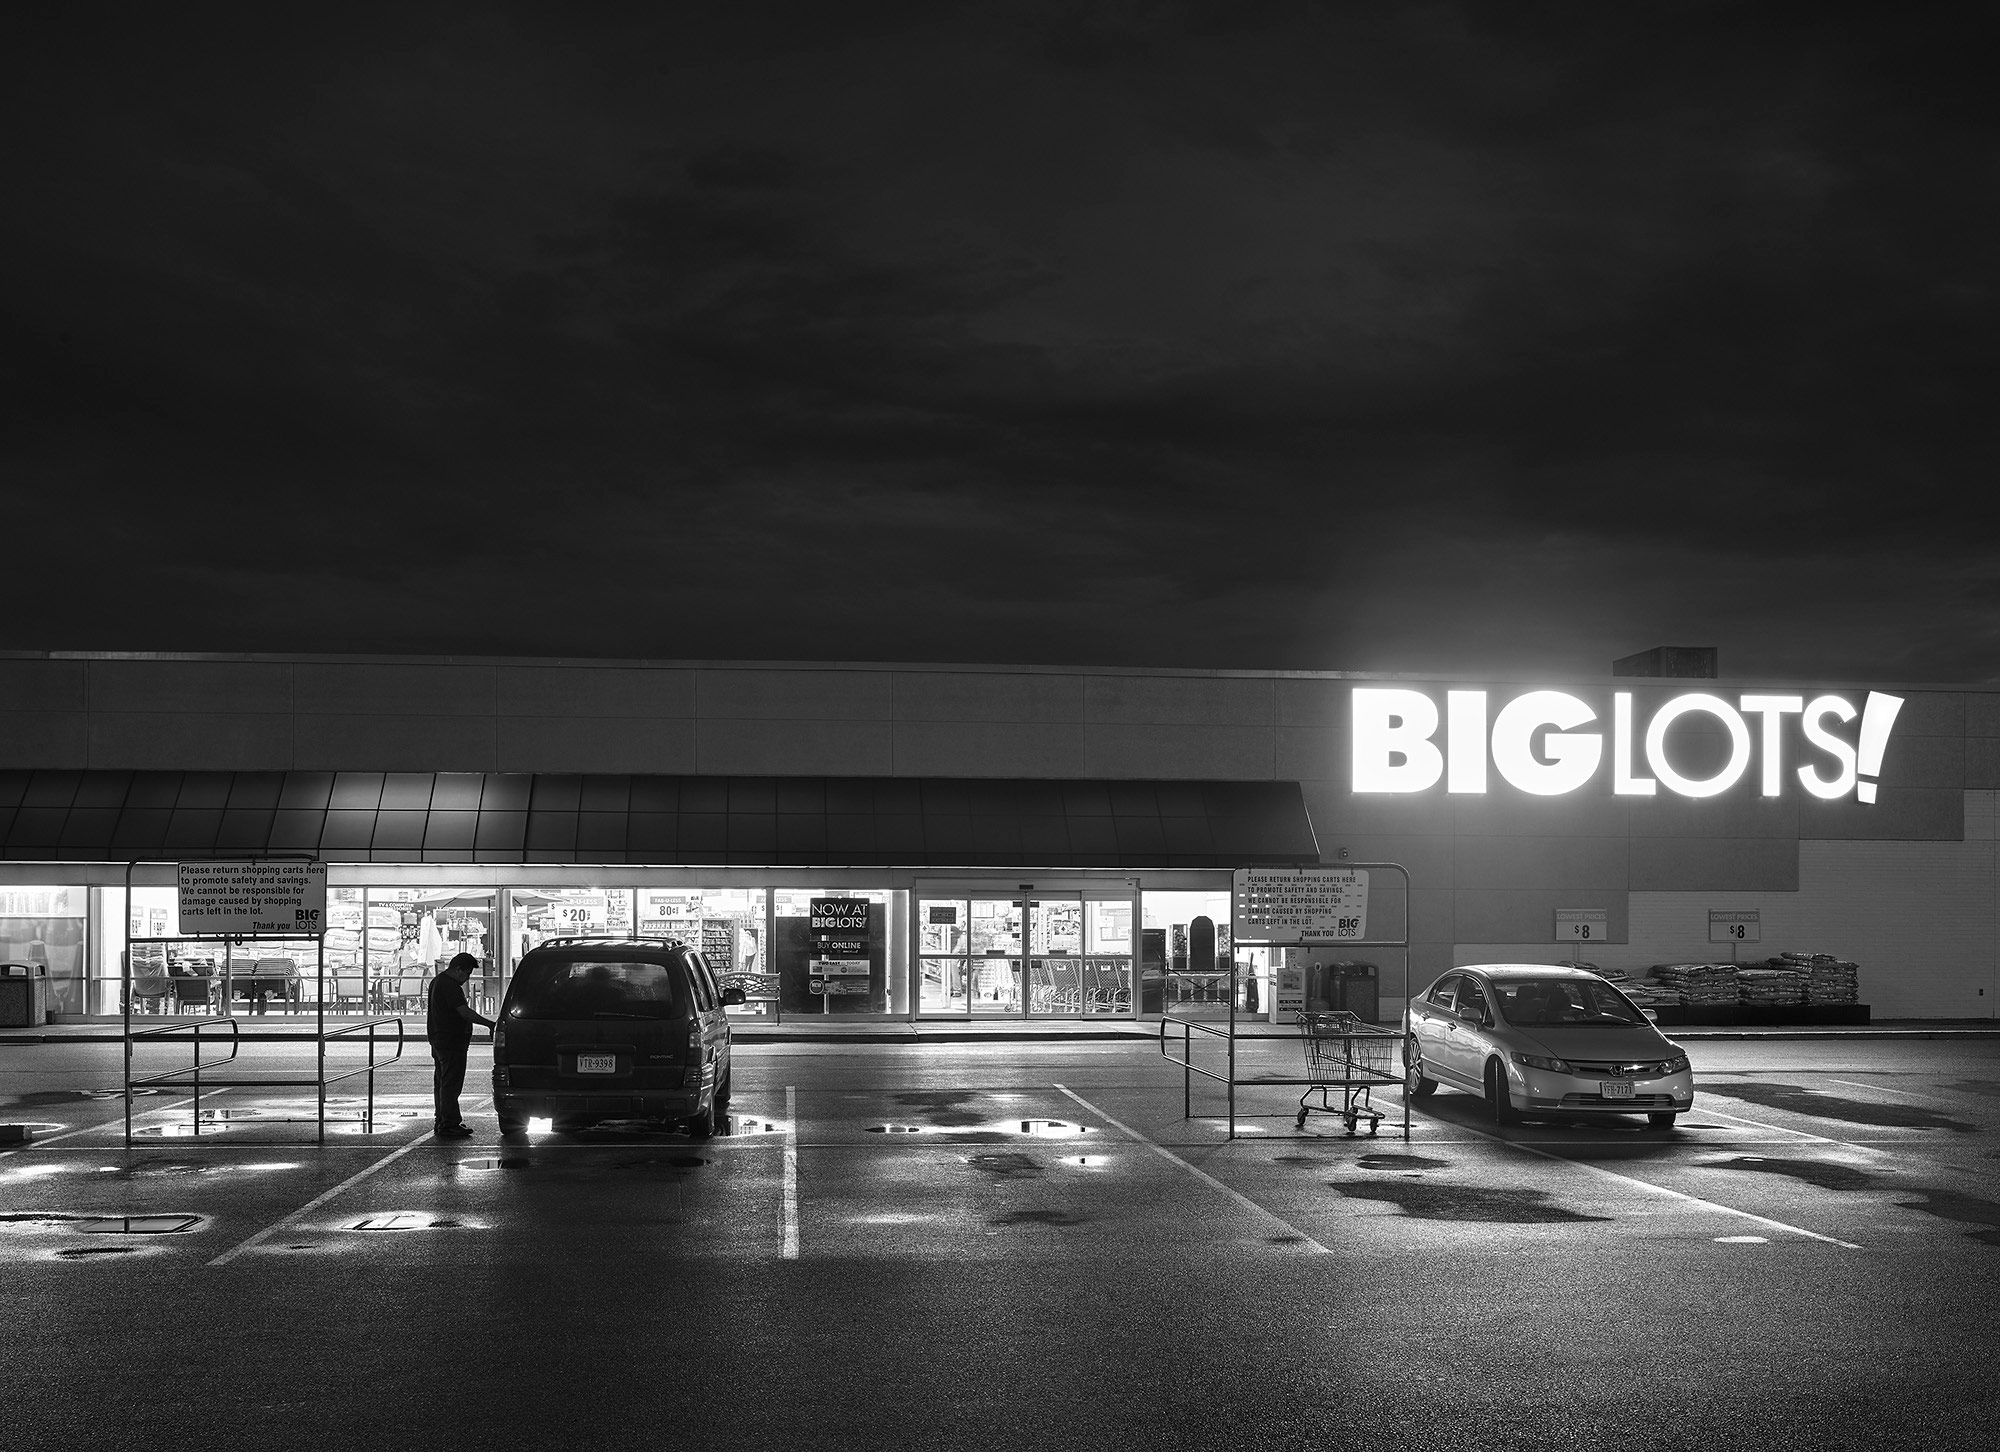 Big Lots!, Harrisonburg, VA